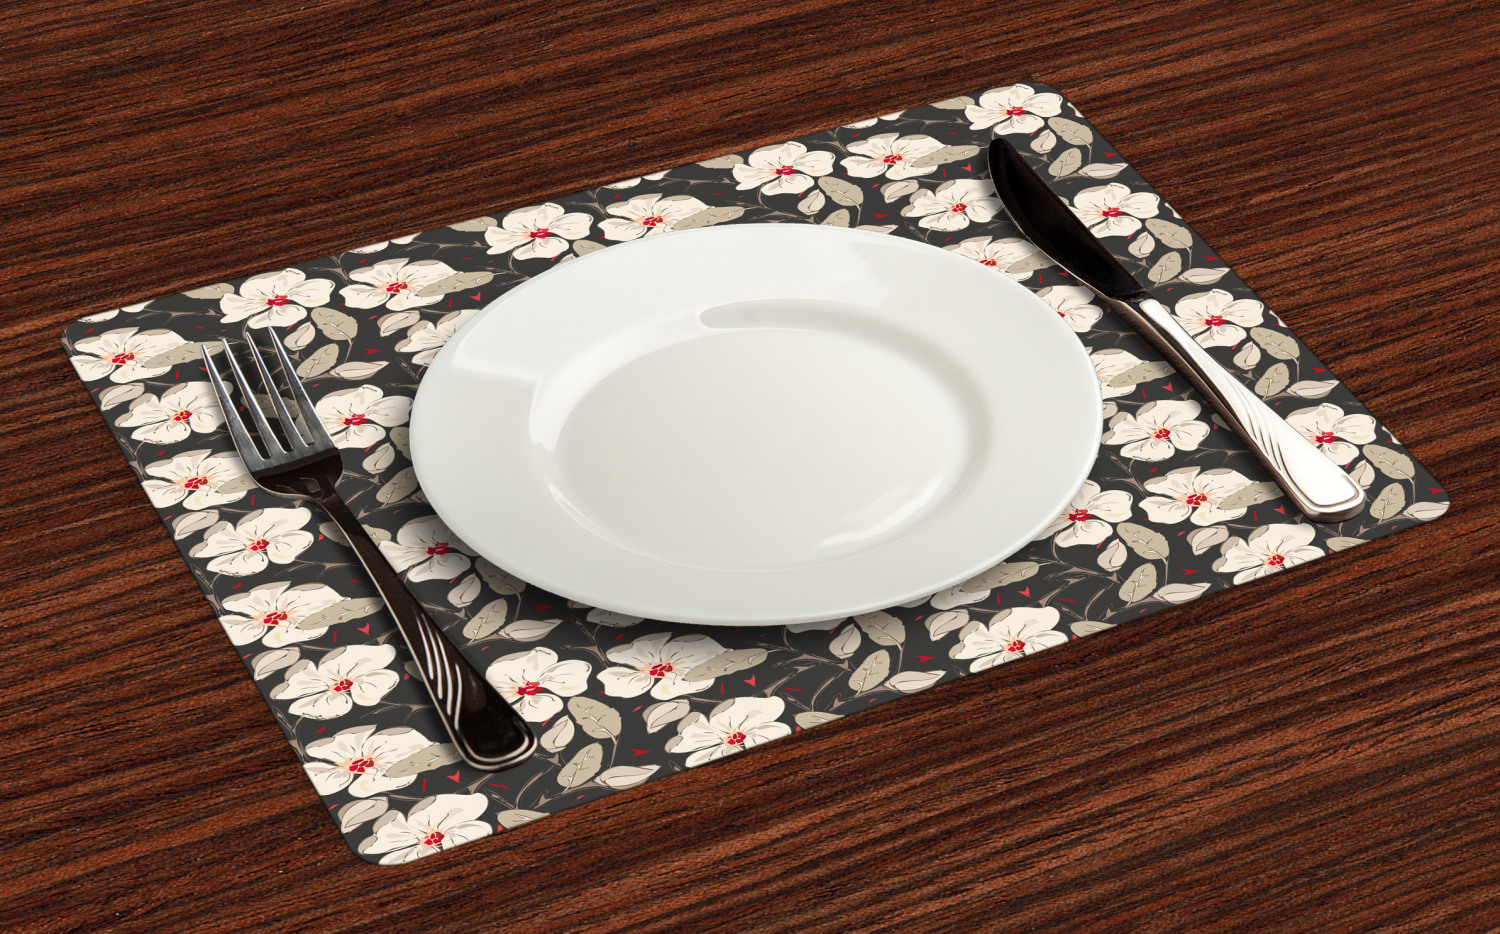 Ambesonne-Flower-Pattern-Placemat-Set-of-4-Fabric-Place-Mats-for-Table-Decor thumbnail 181